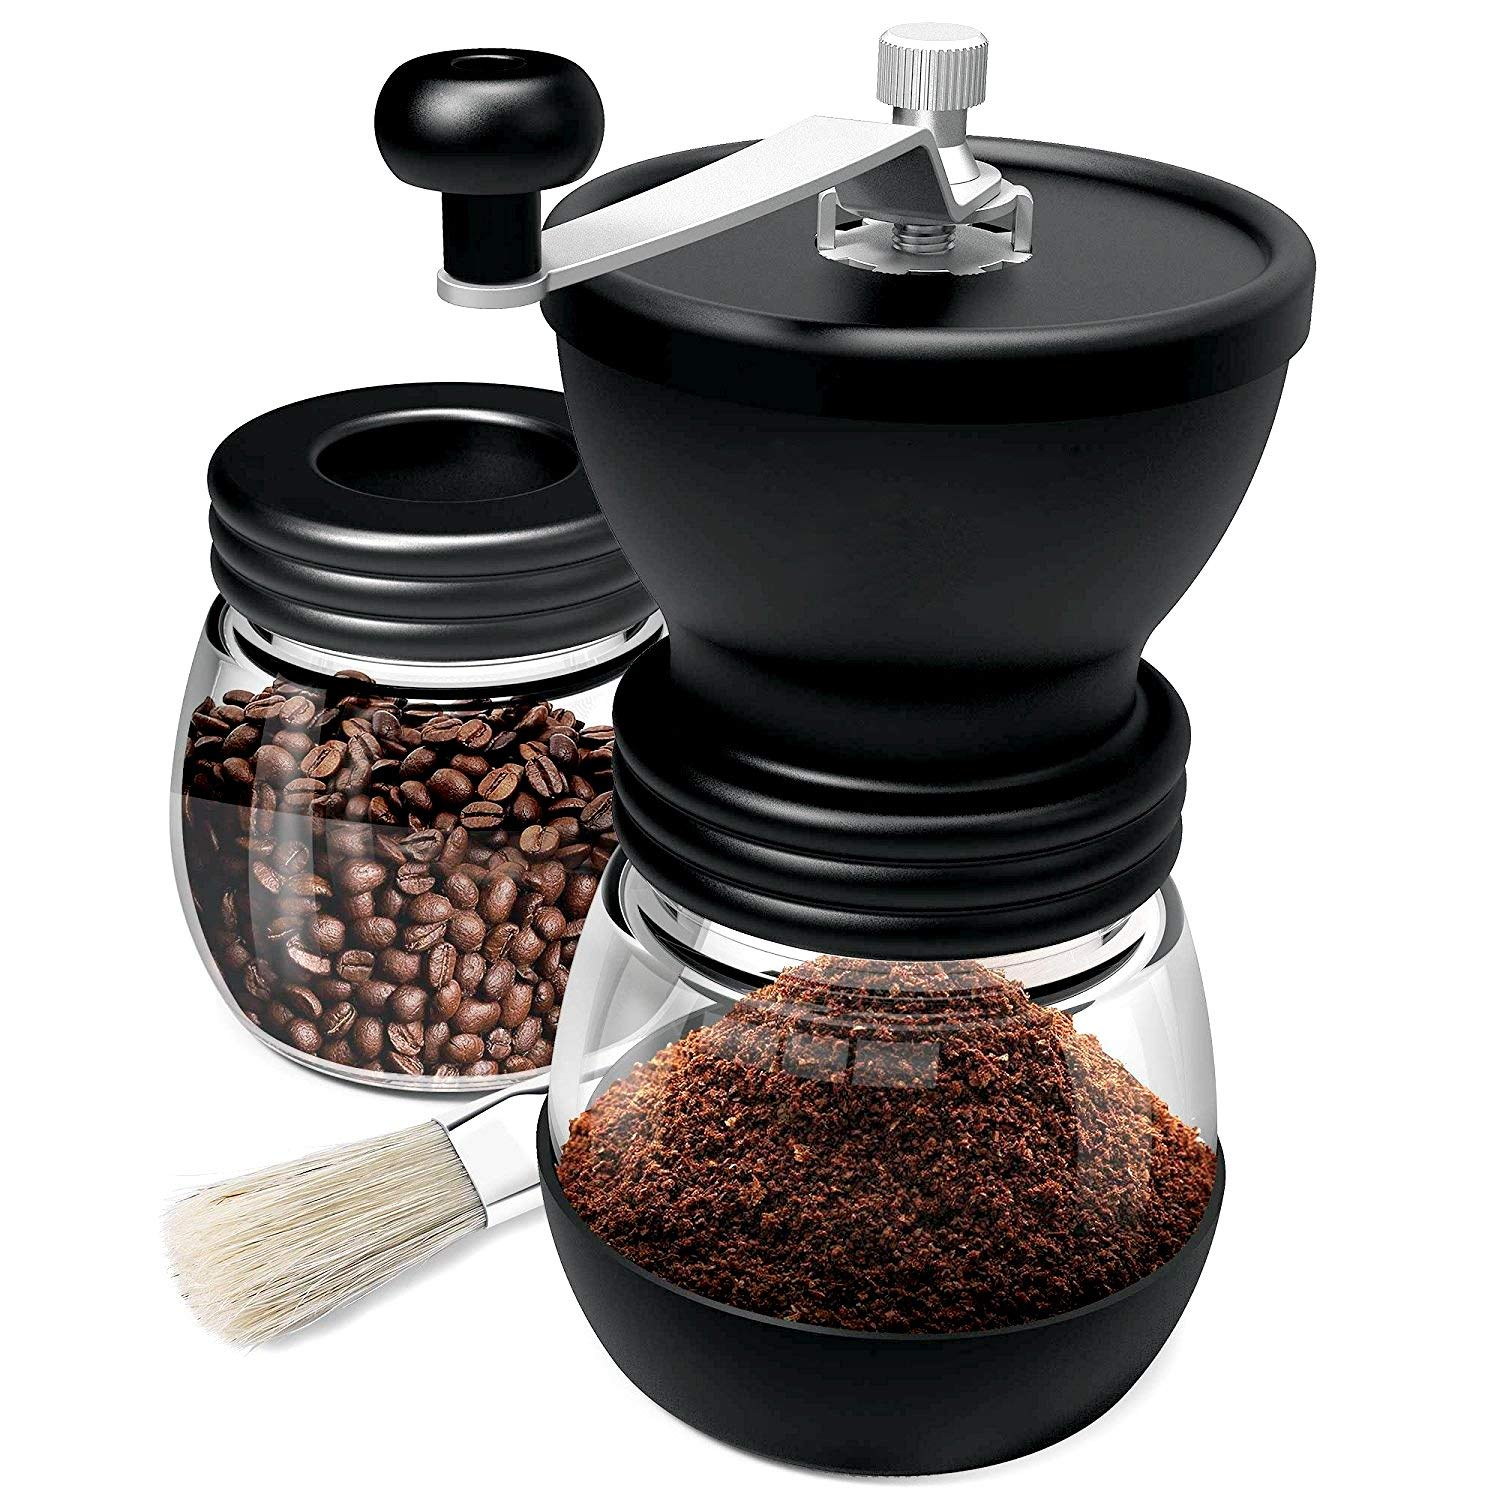 Manual Coffee Mill Grinder with Ceramic Burrs,Ceramic Burr Manual Coffee Grinder,Manual Coffee Bean Grinder,Manual Coffee Grinder Ceramic Burr,Coffee Bean Grinder Burr